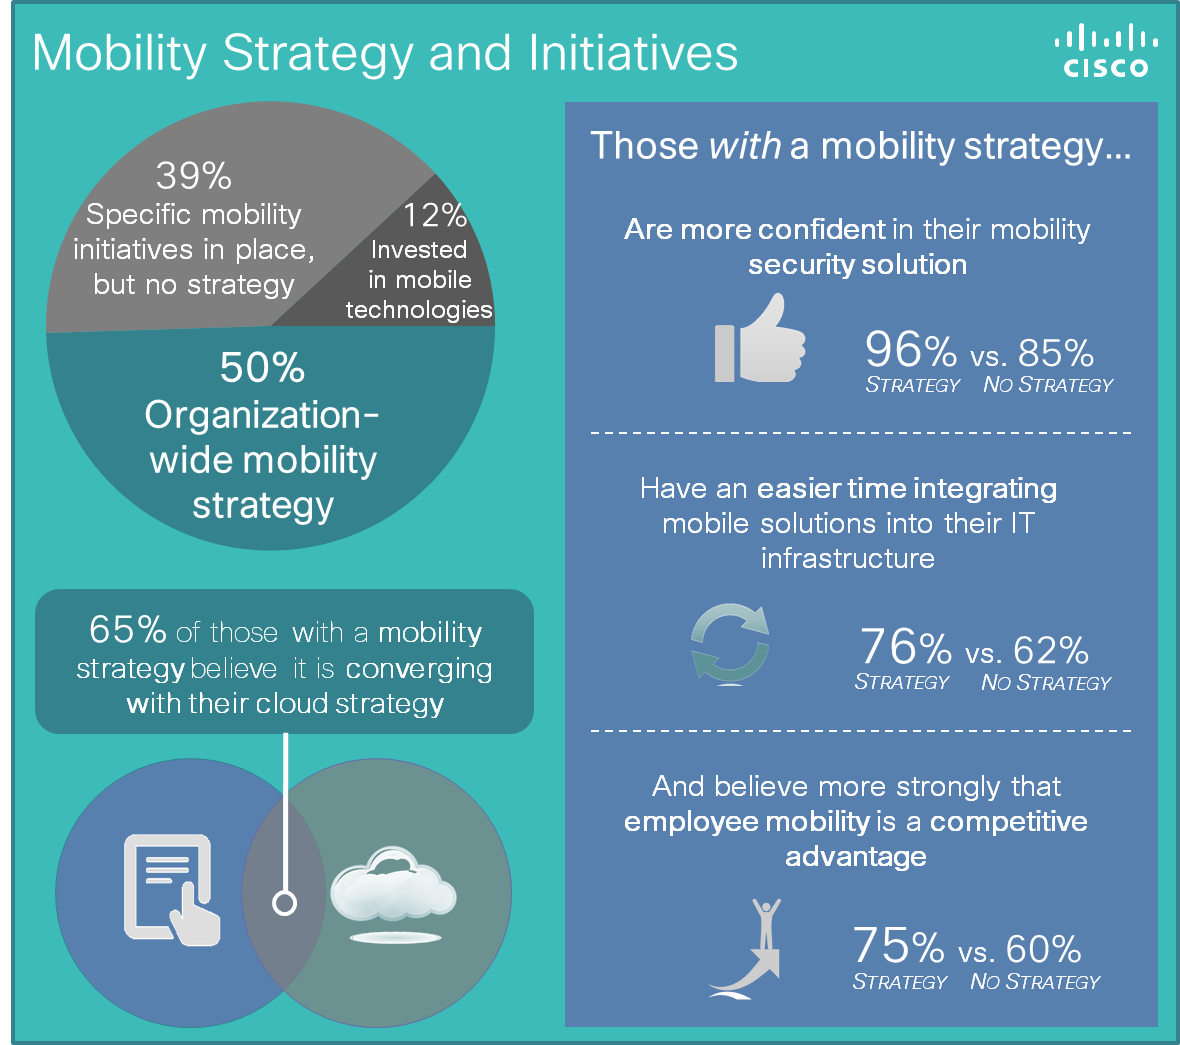 Mobility and Strategy Initiatives